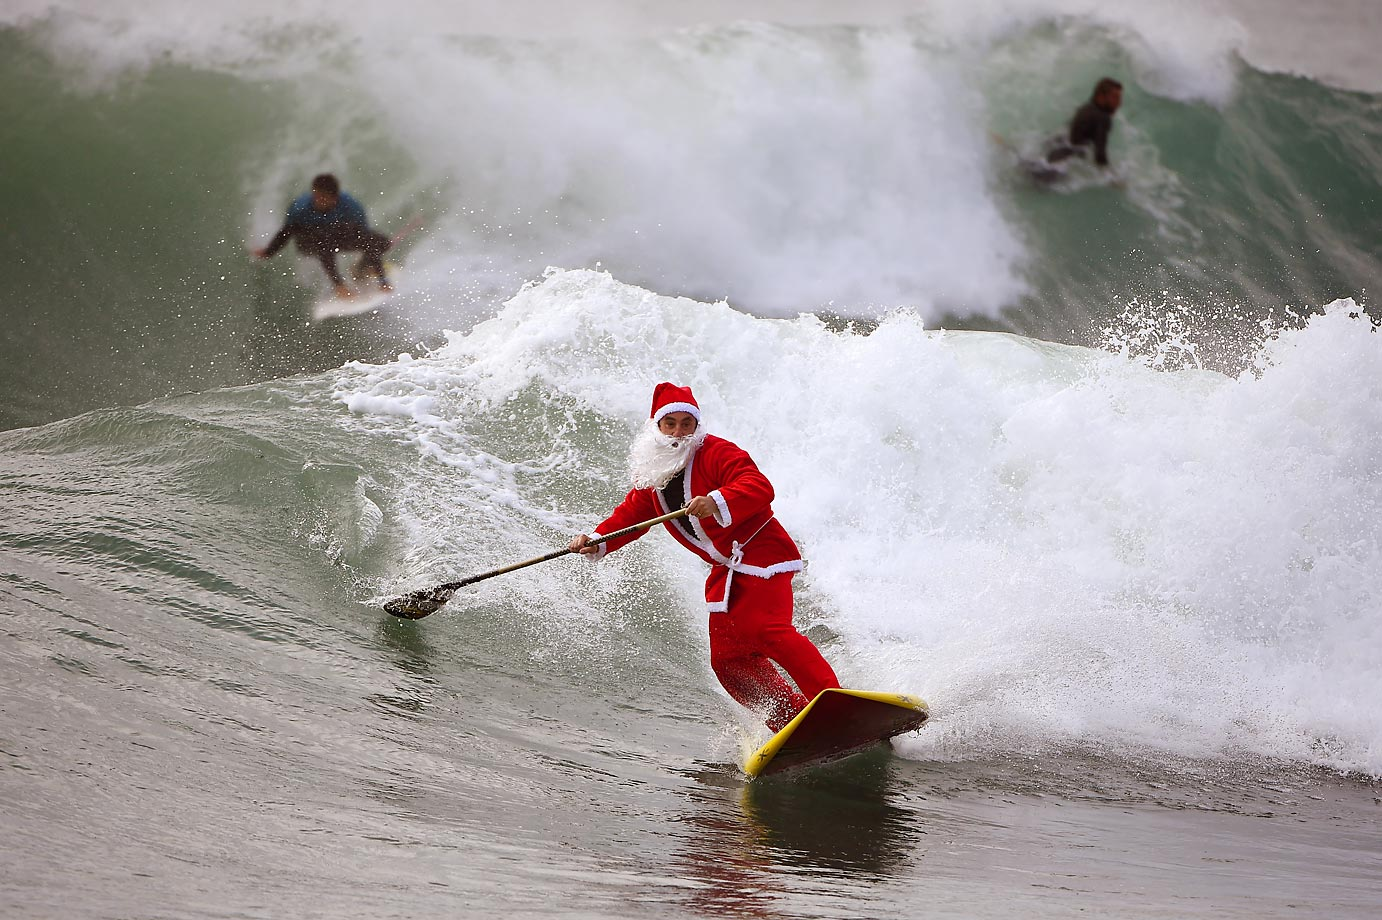 Santa impressively rides a wave on a stand up paddle board in Varazze, Italy.